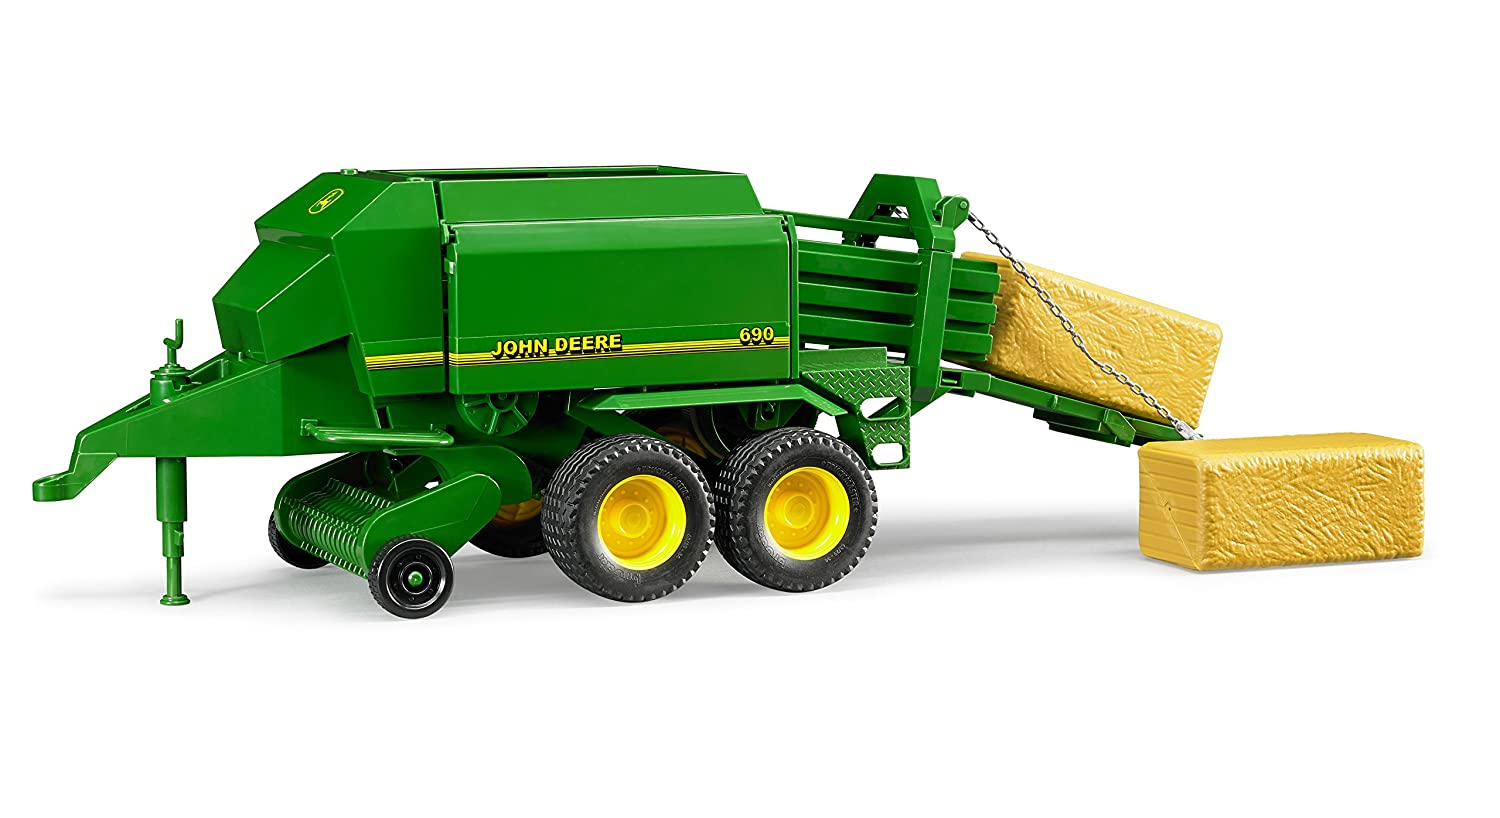 Bruder John Deere Big Bale Press